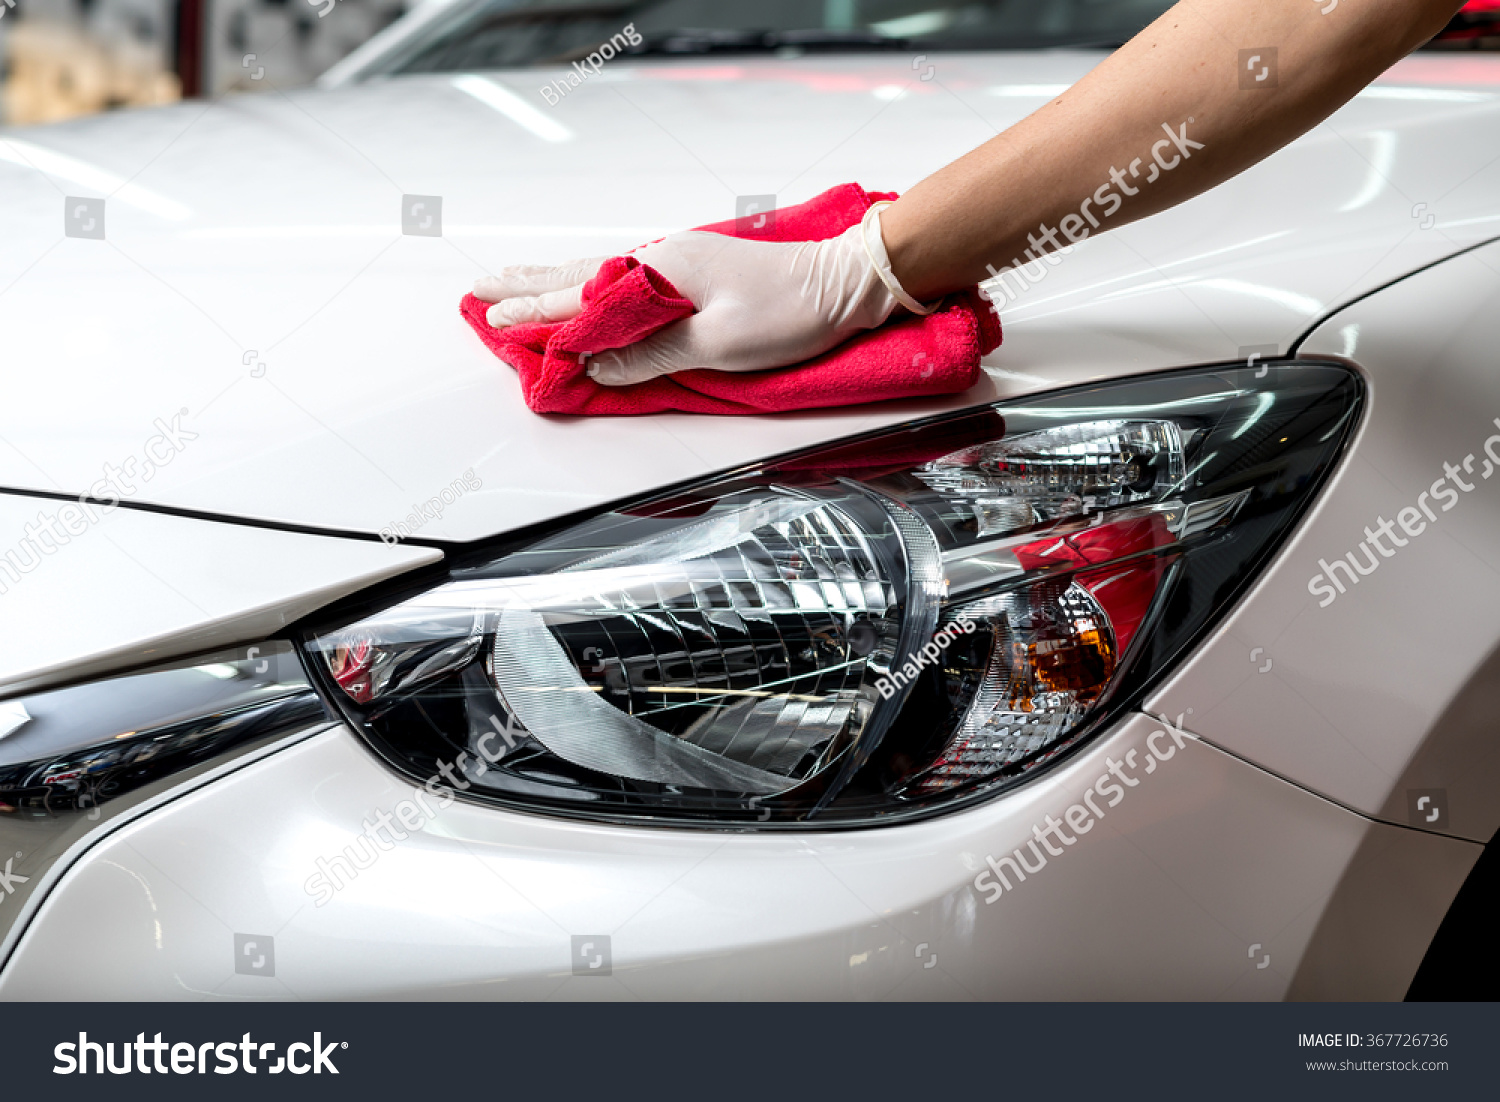 car detailing series worker cleaning white stock photo 367726736 shutterstock. Black Bedroom Furniture Sets. Home Design Ideas